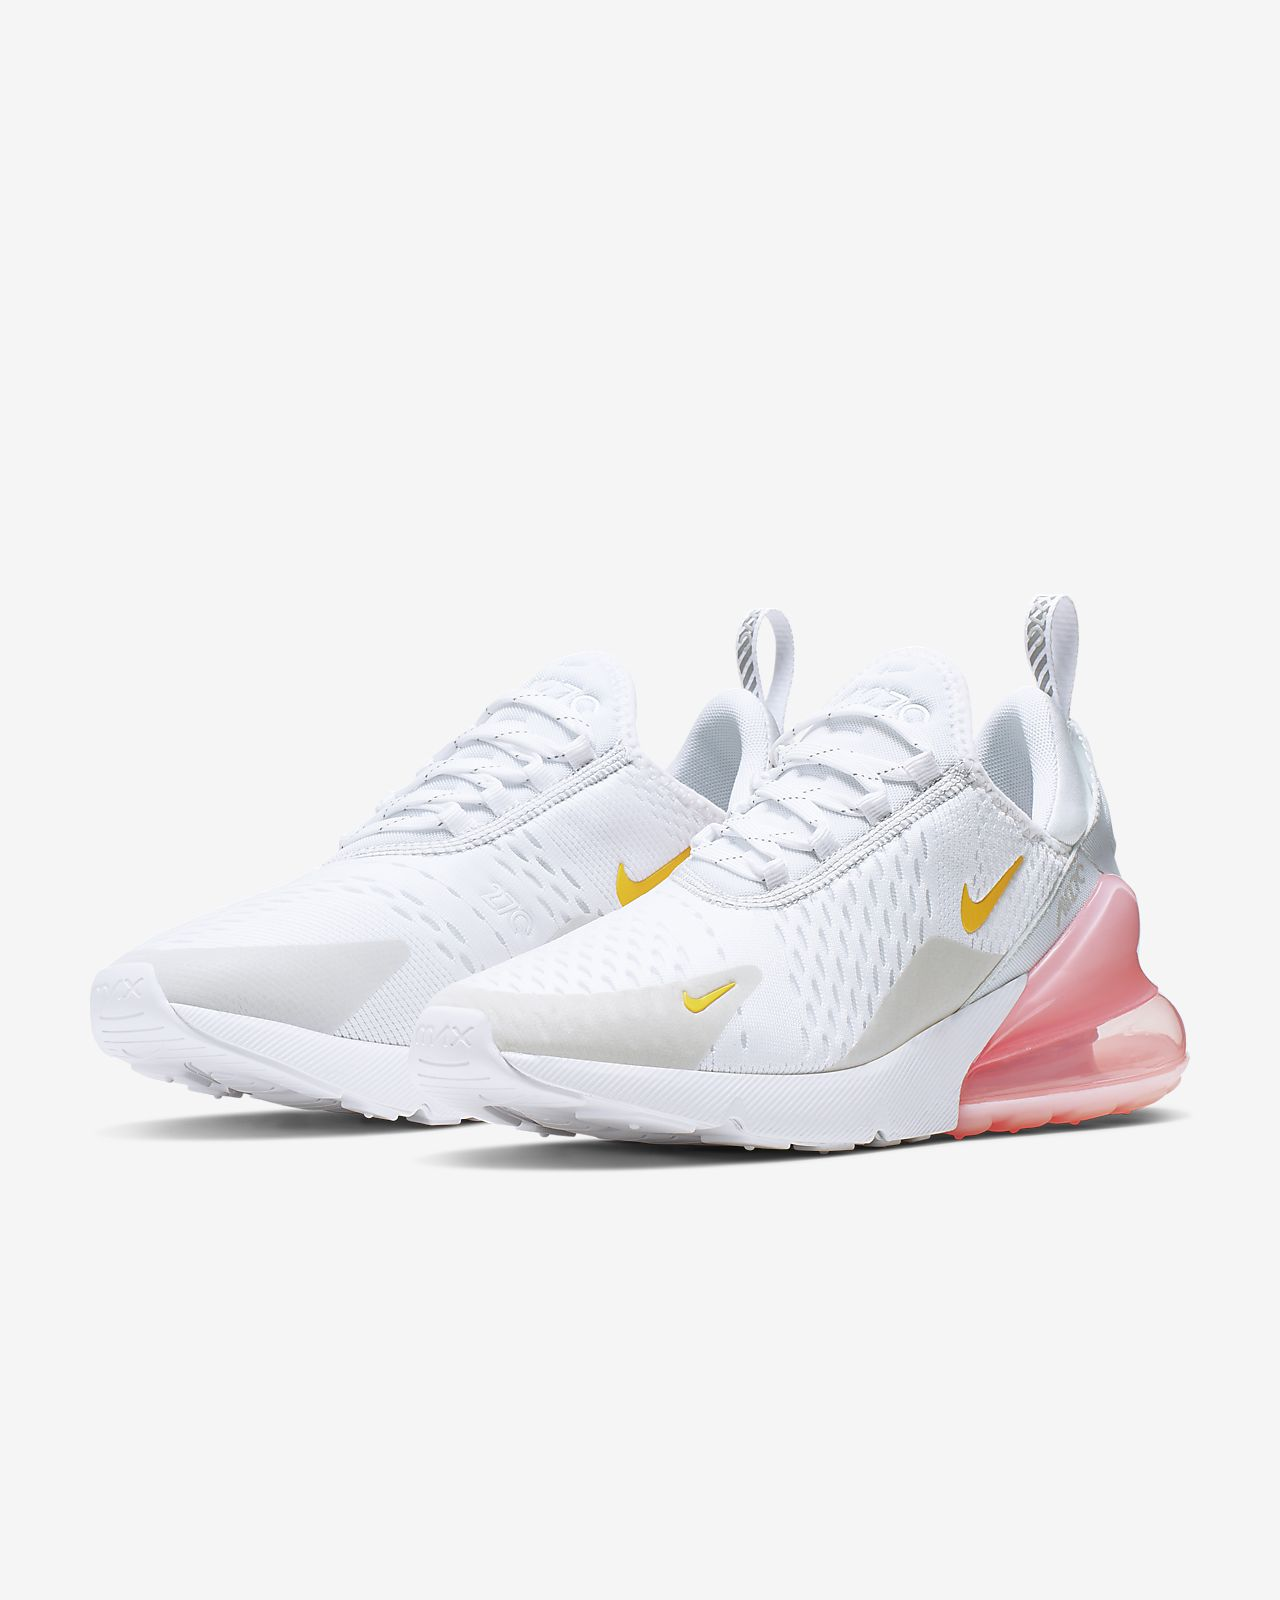 separation shoes 18bf6 65726 ... Nike Air Max 270 Women s Shoe